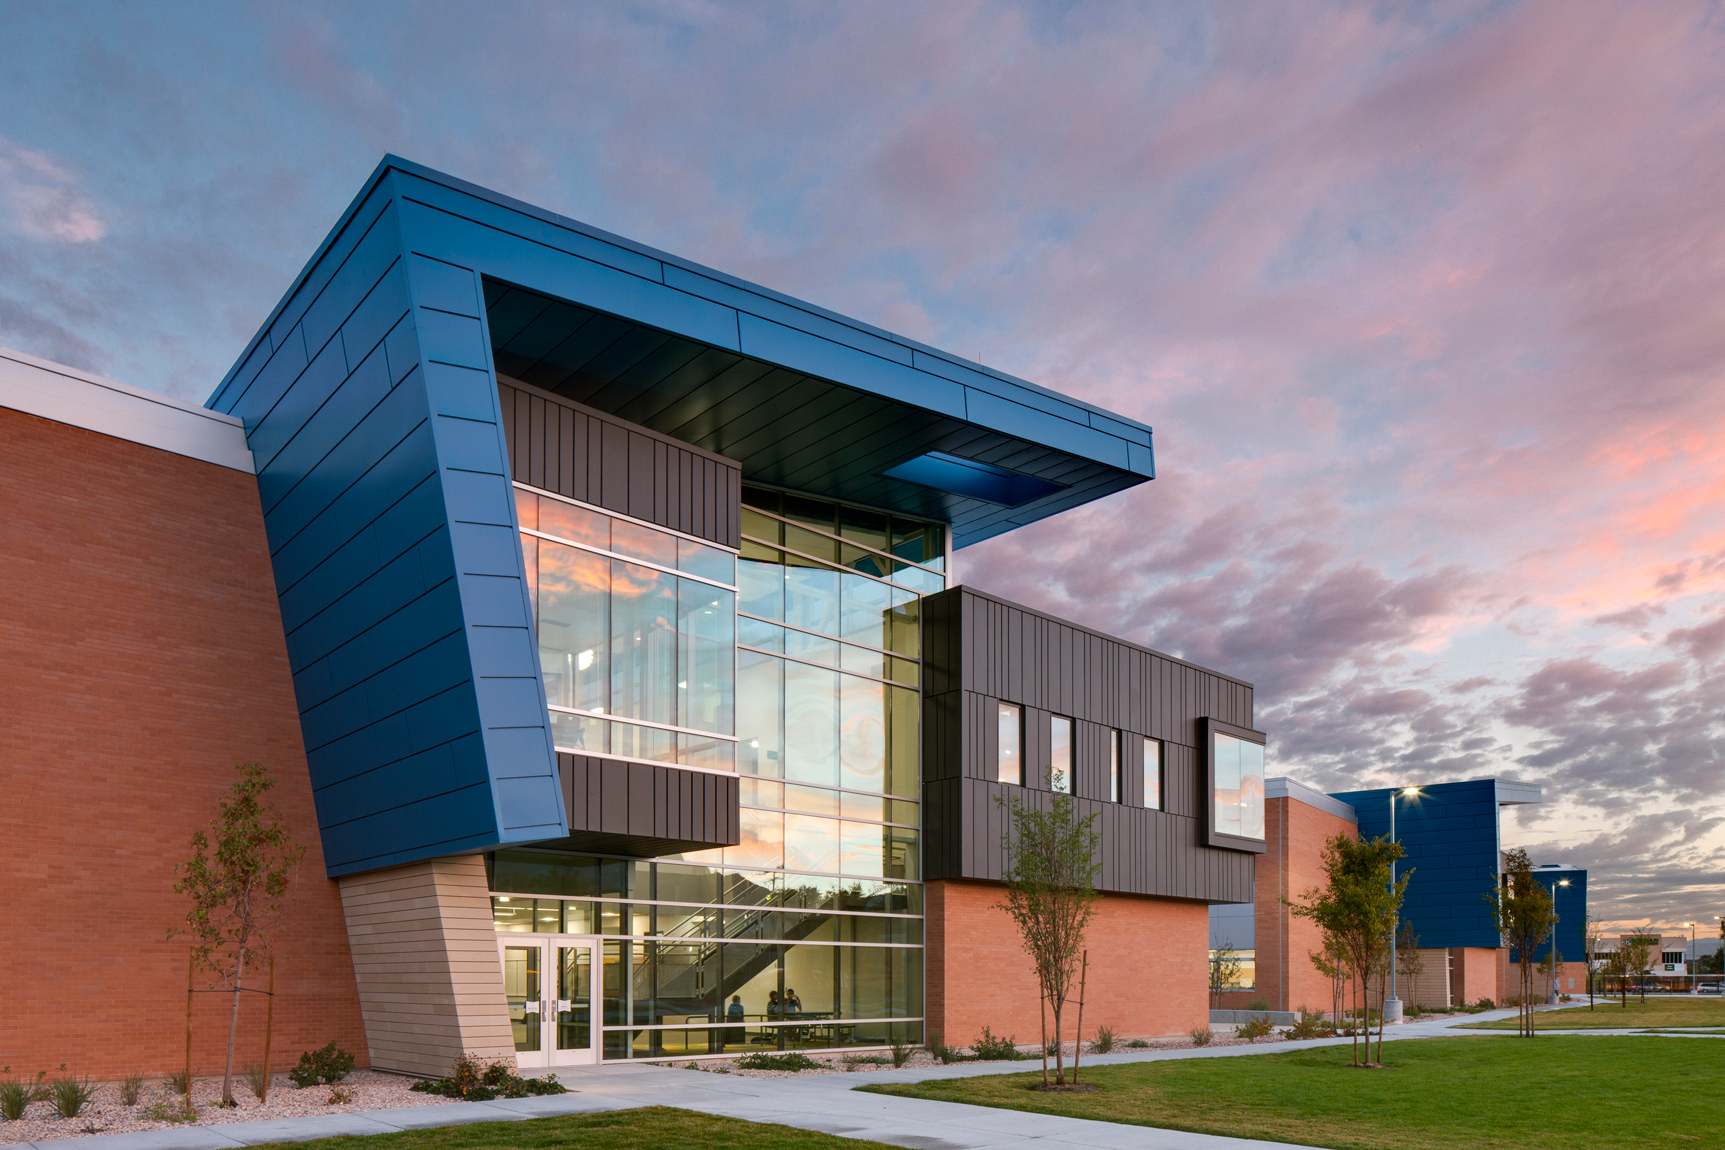 Exterior view of classroom wing at sunrise at Mt. Jordan Middle School in Sandy Utah for MHTN Architects / Hogan & Associates. These wings feature metal cladding and overhangs of blue metal. Architectural Photography by Paul Richer / RICHER IMAGES